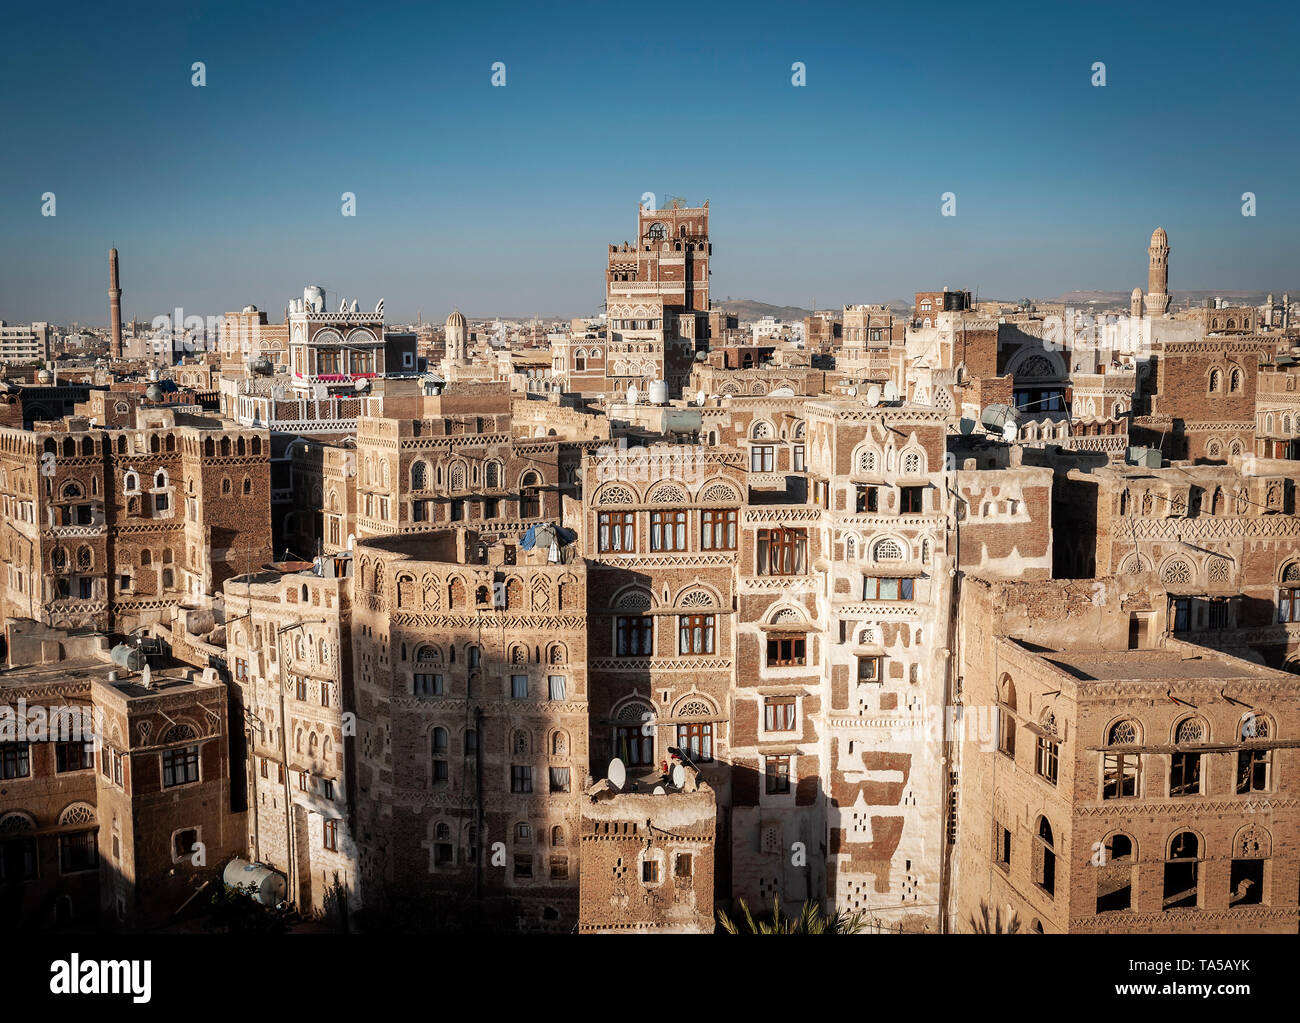 view of  downtown sanaa city old town traditional arabic architecture skyline in yemen - Stock Image